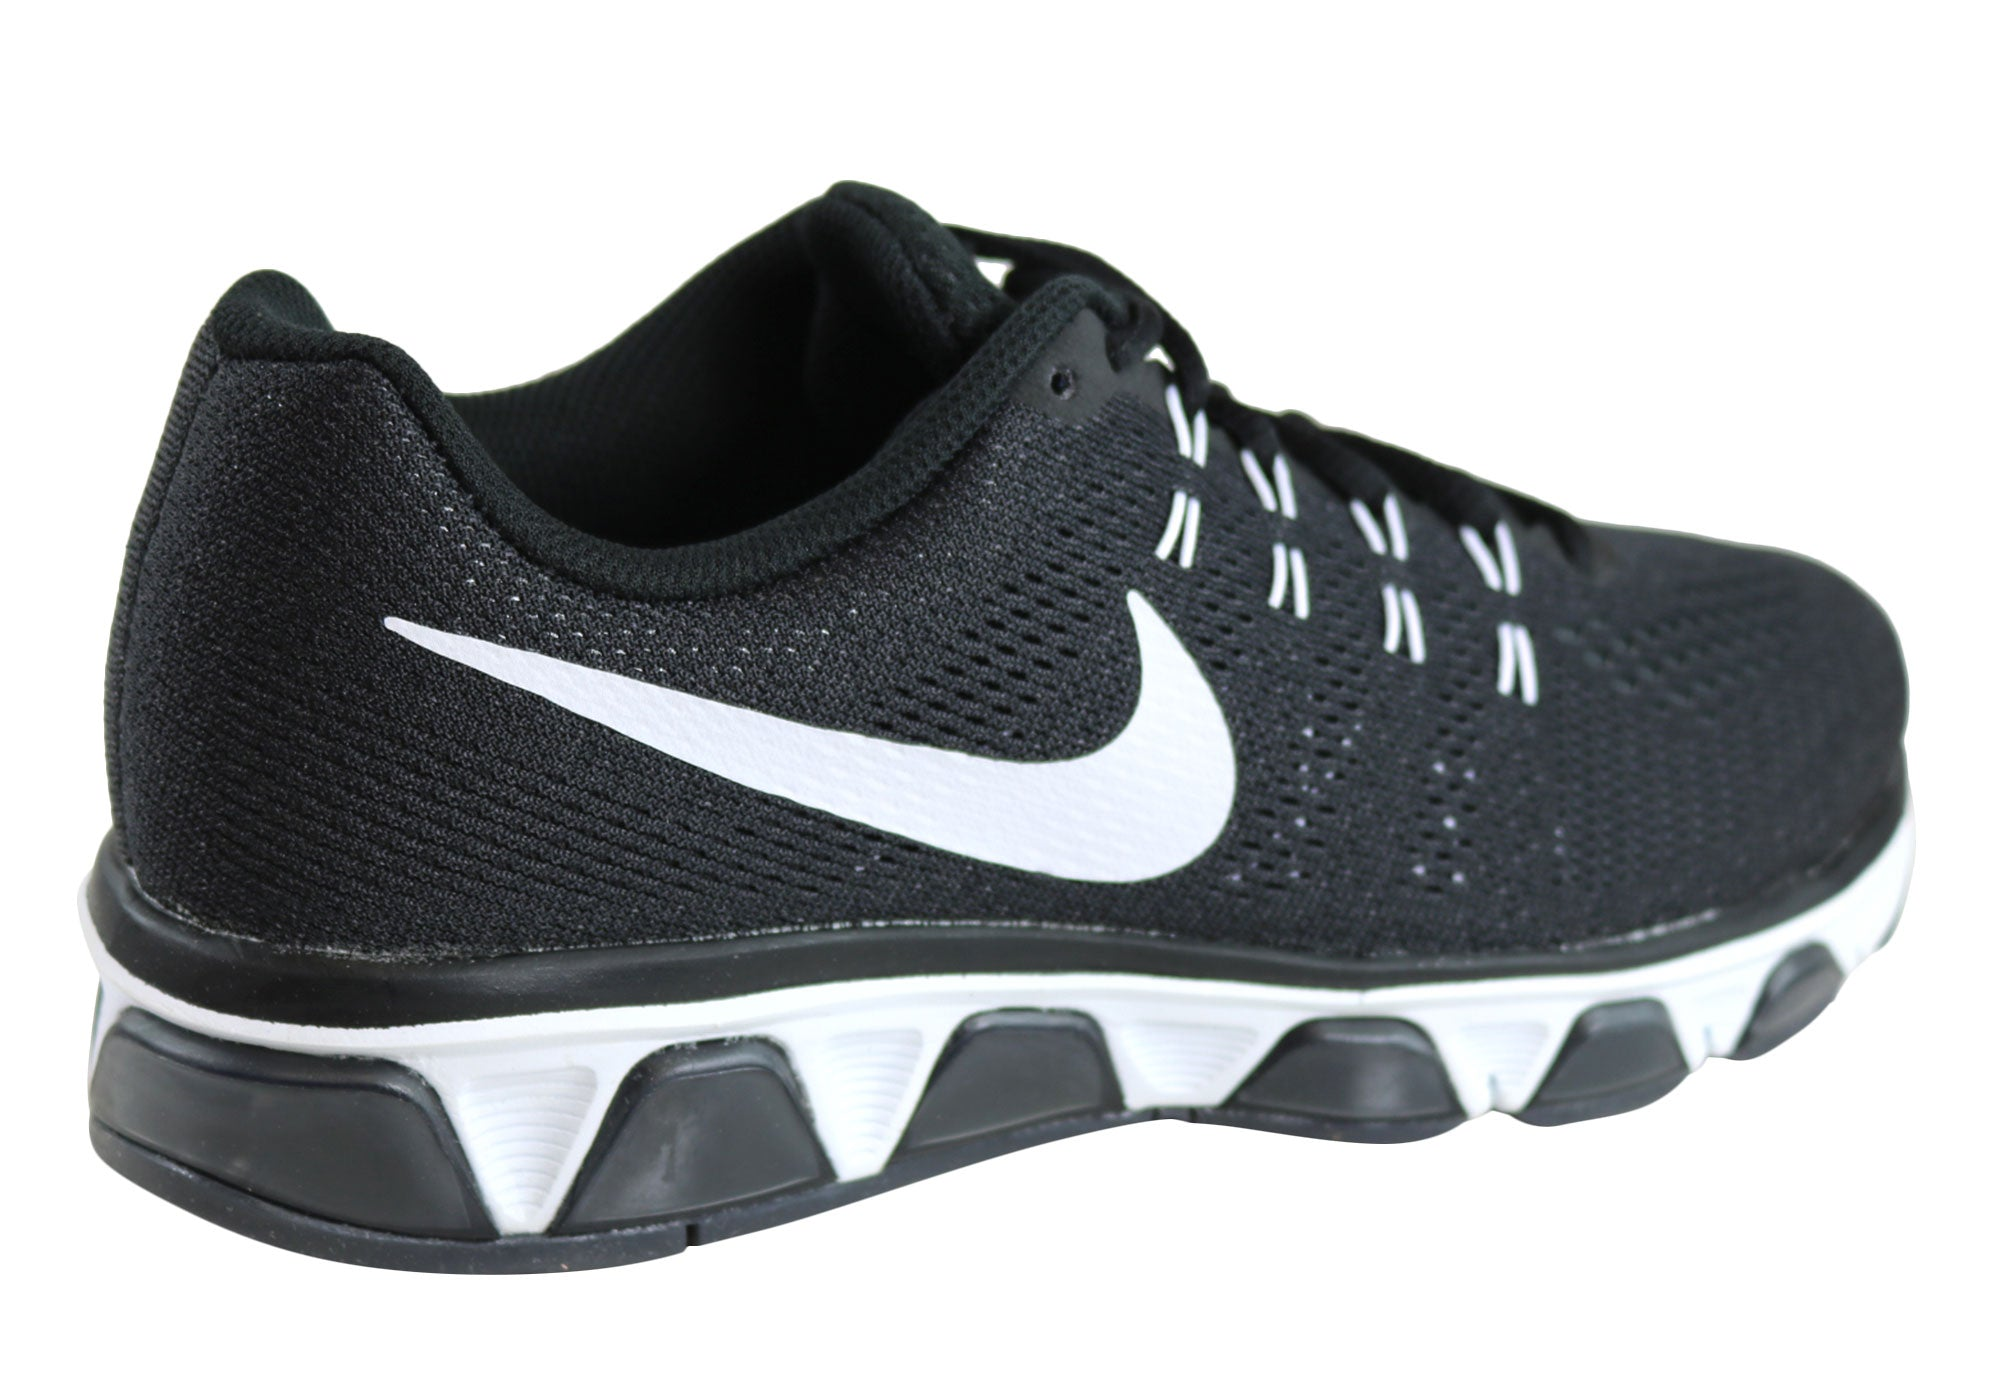 new style a7699 c0771 Home Nike Womens Air Max Tailwind 8 Running Sport Shoes. Black White · Black White  · Black White · Black White · Black White ...